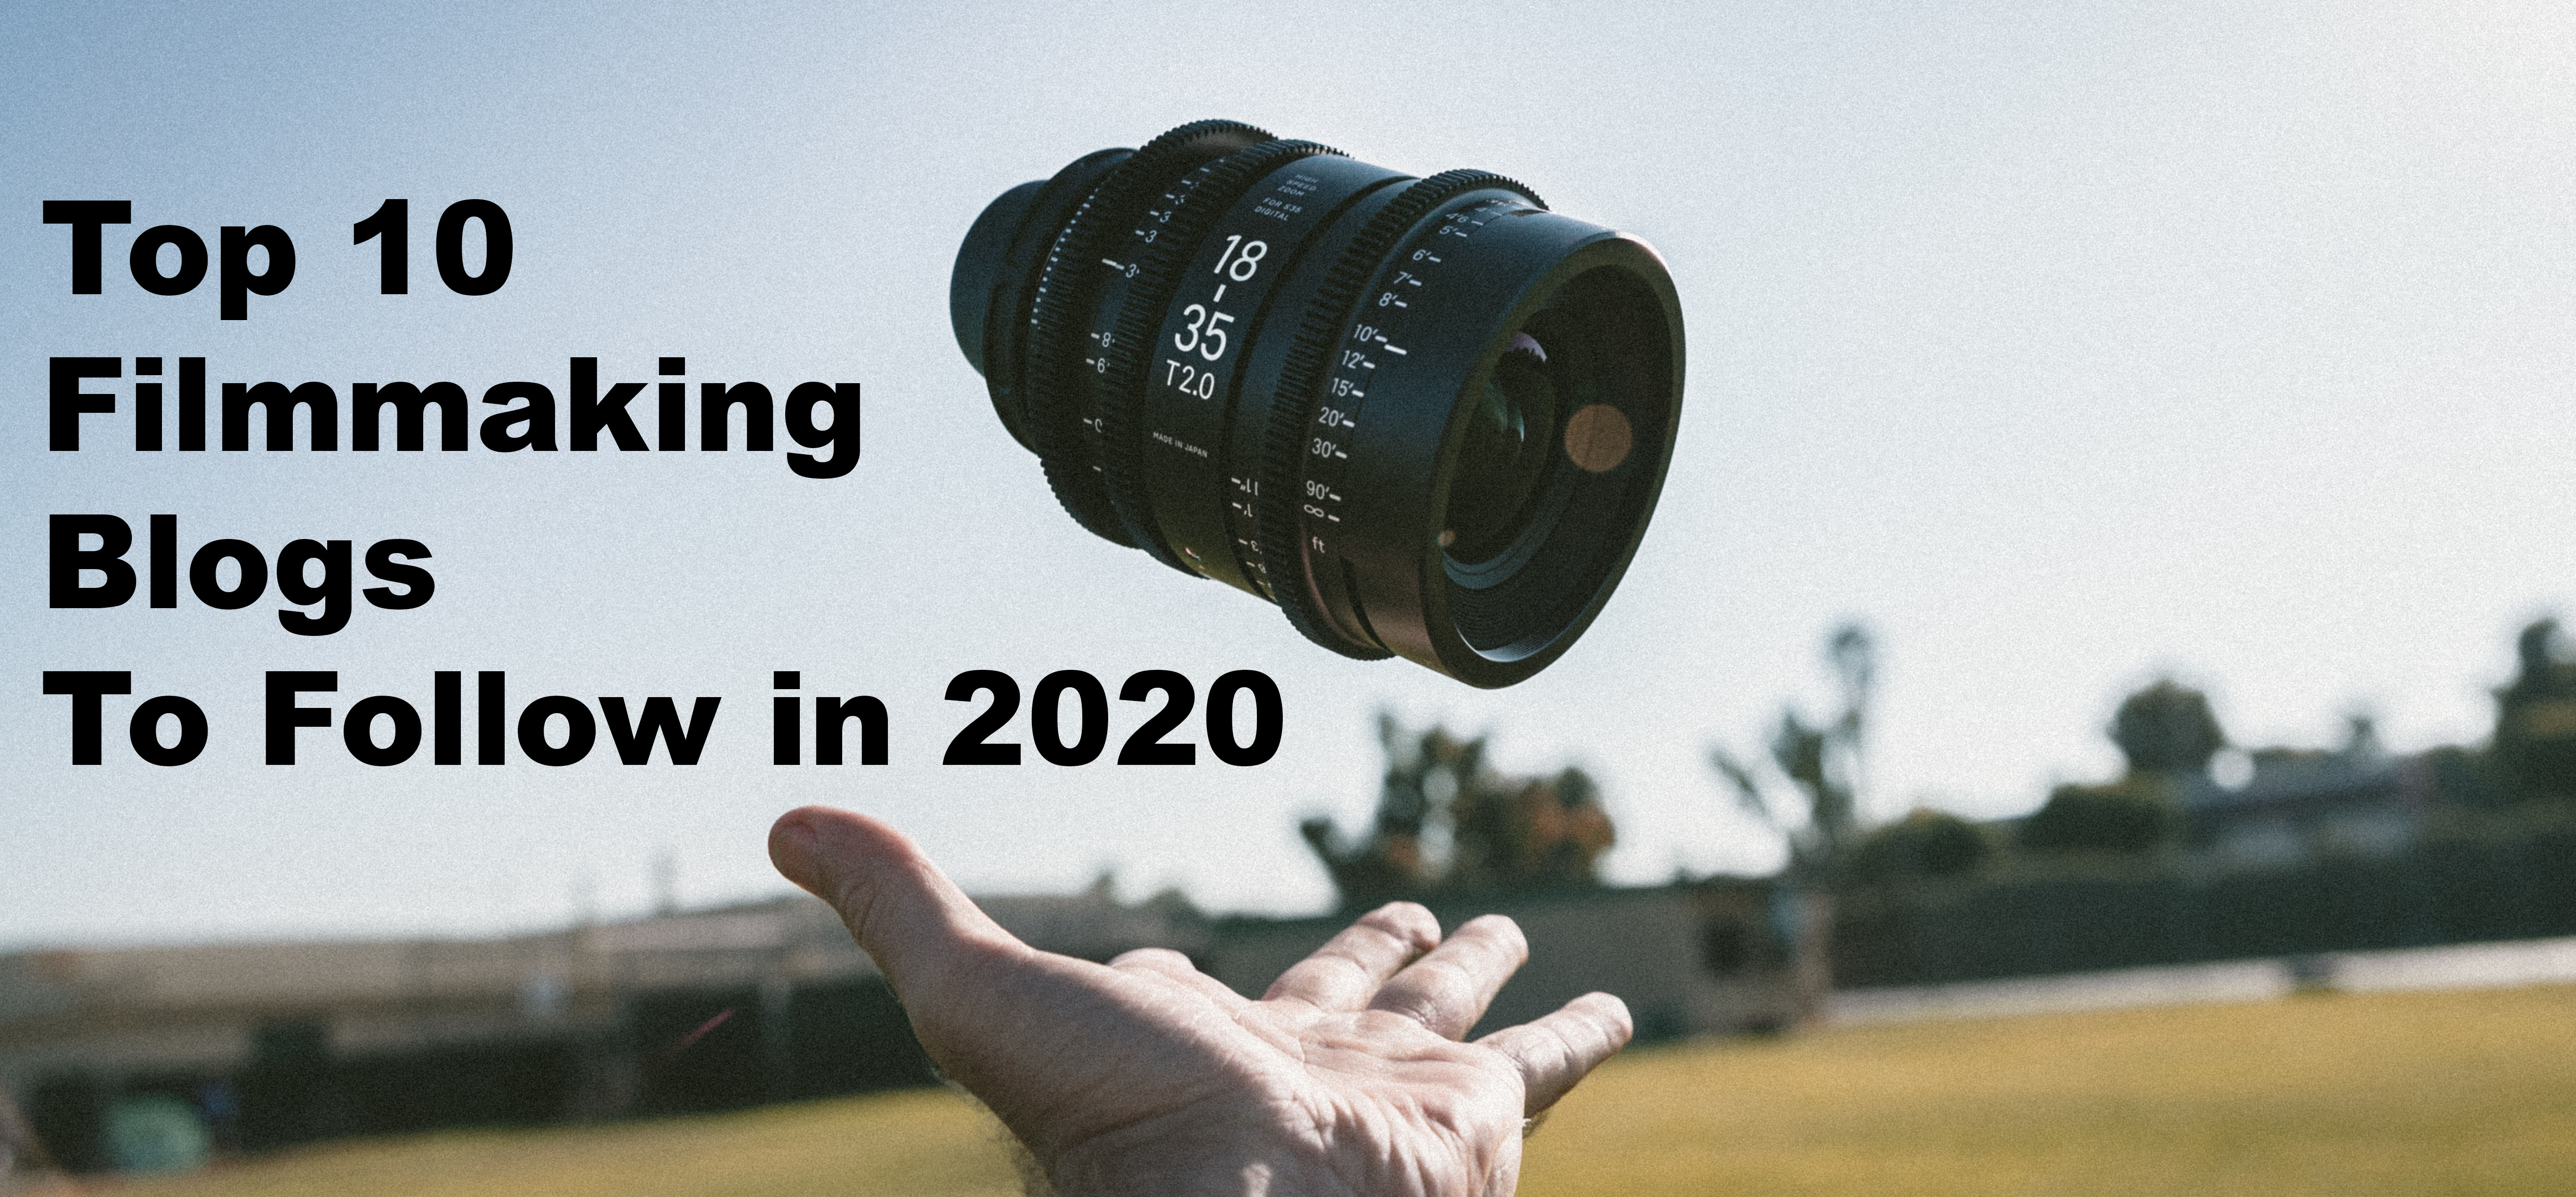 Top 10 Filmmaking Blogs & Websites For Filmmakers To Follow in 2020